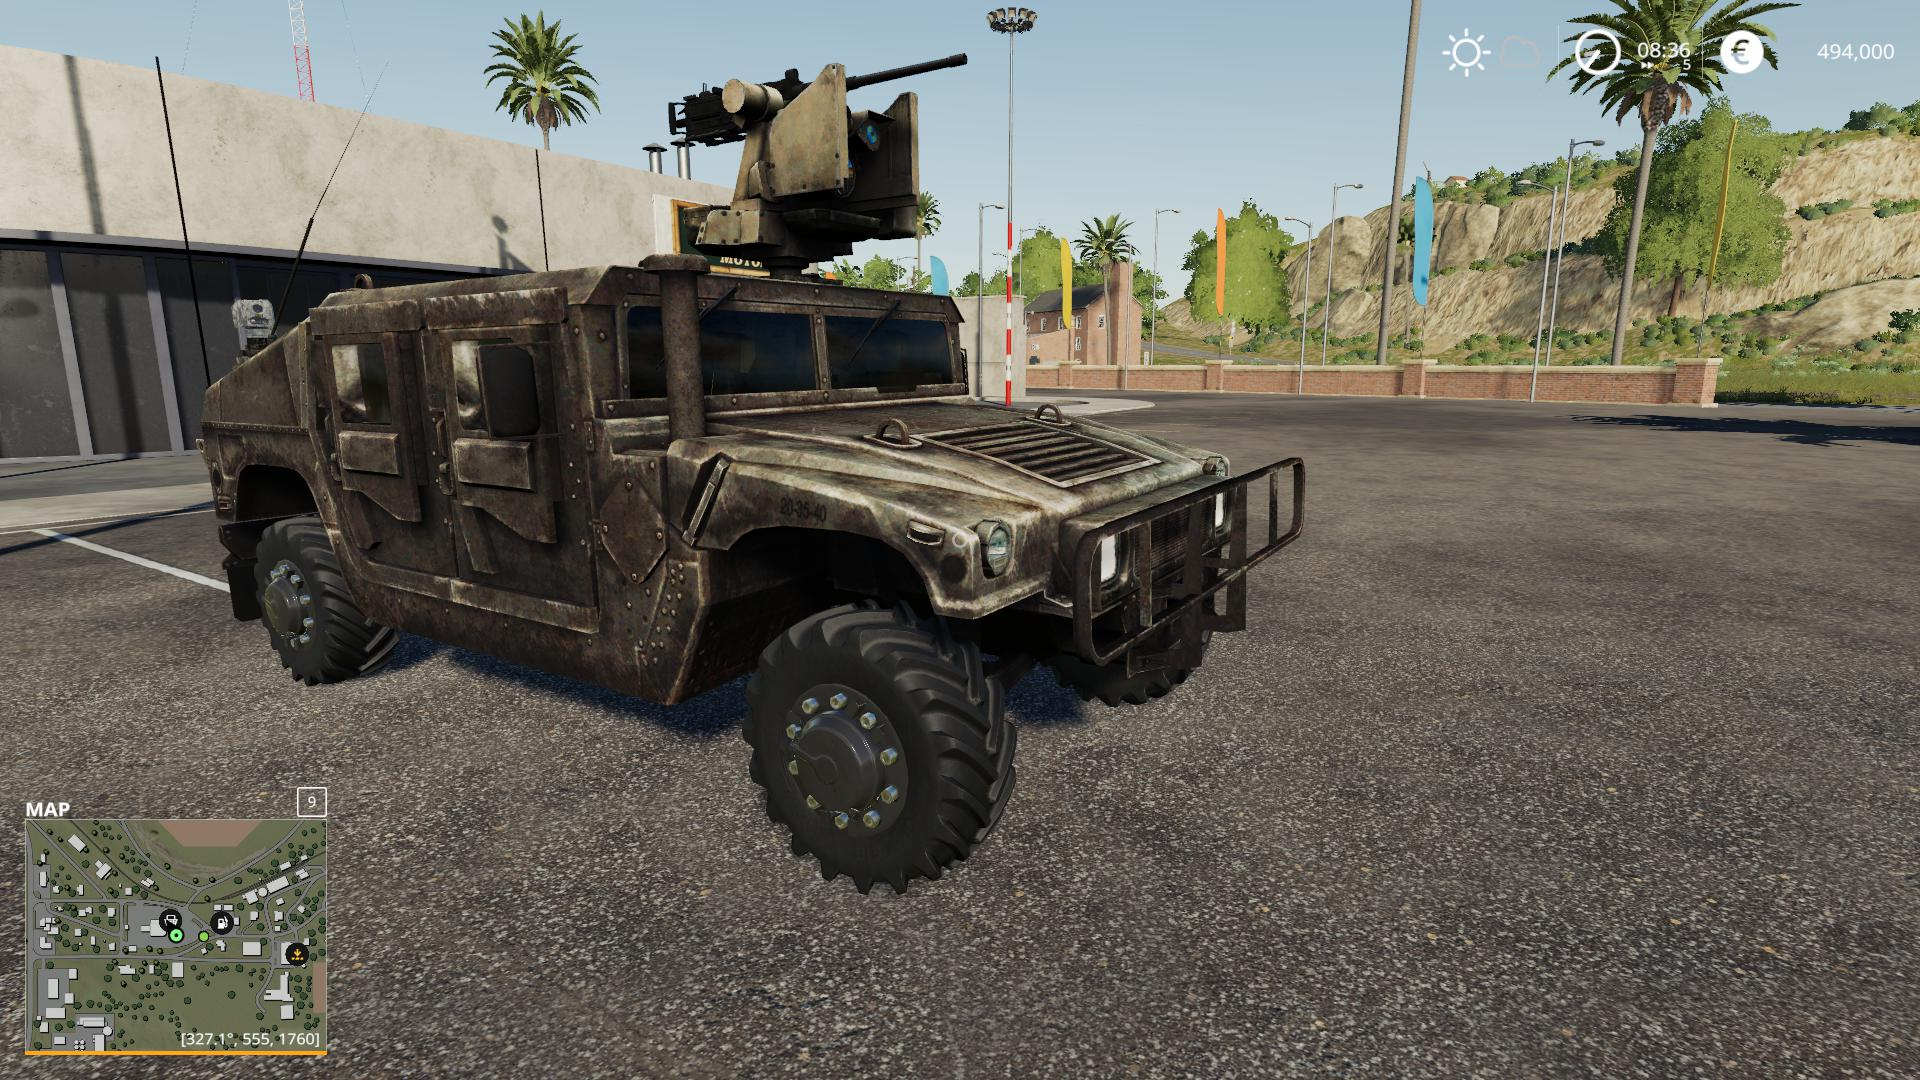 Humvee tactical v1 0 LS 2019 - Farming simulator 17 / 2017 mod